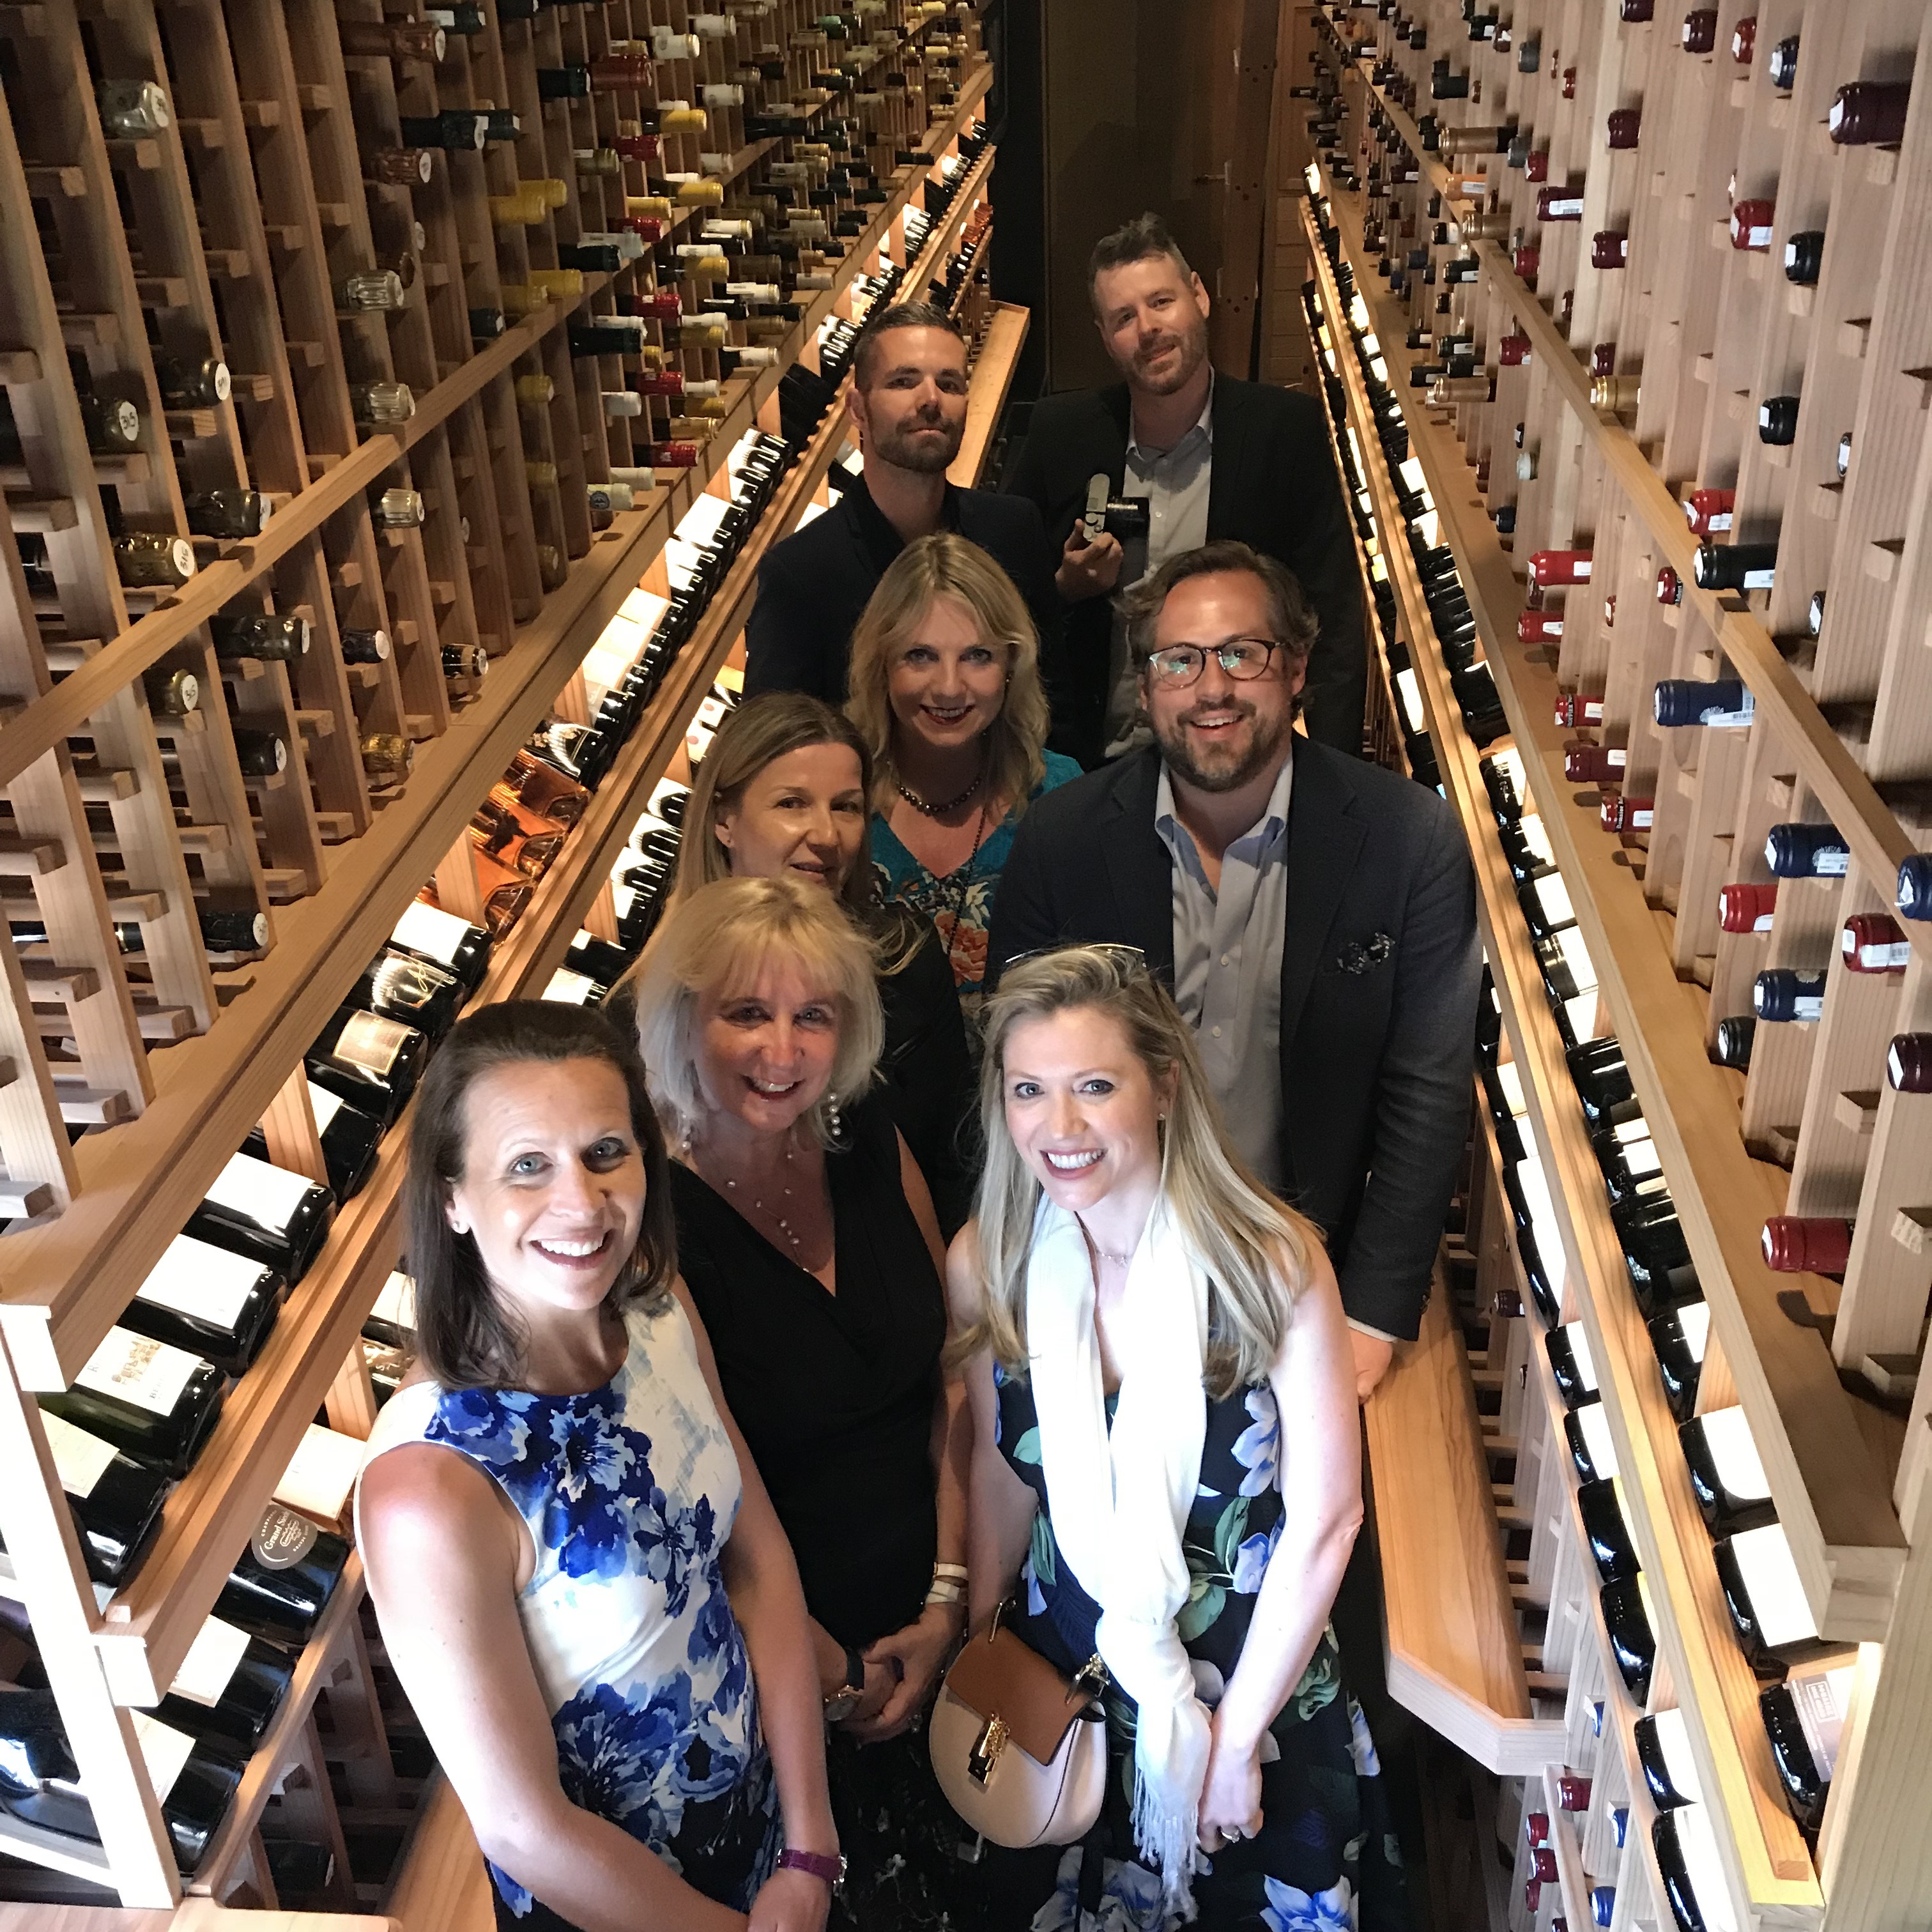 The select journalists who joined Vacheron Constantin in Napa (oh that wine!)